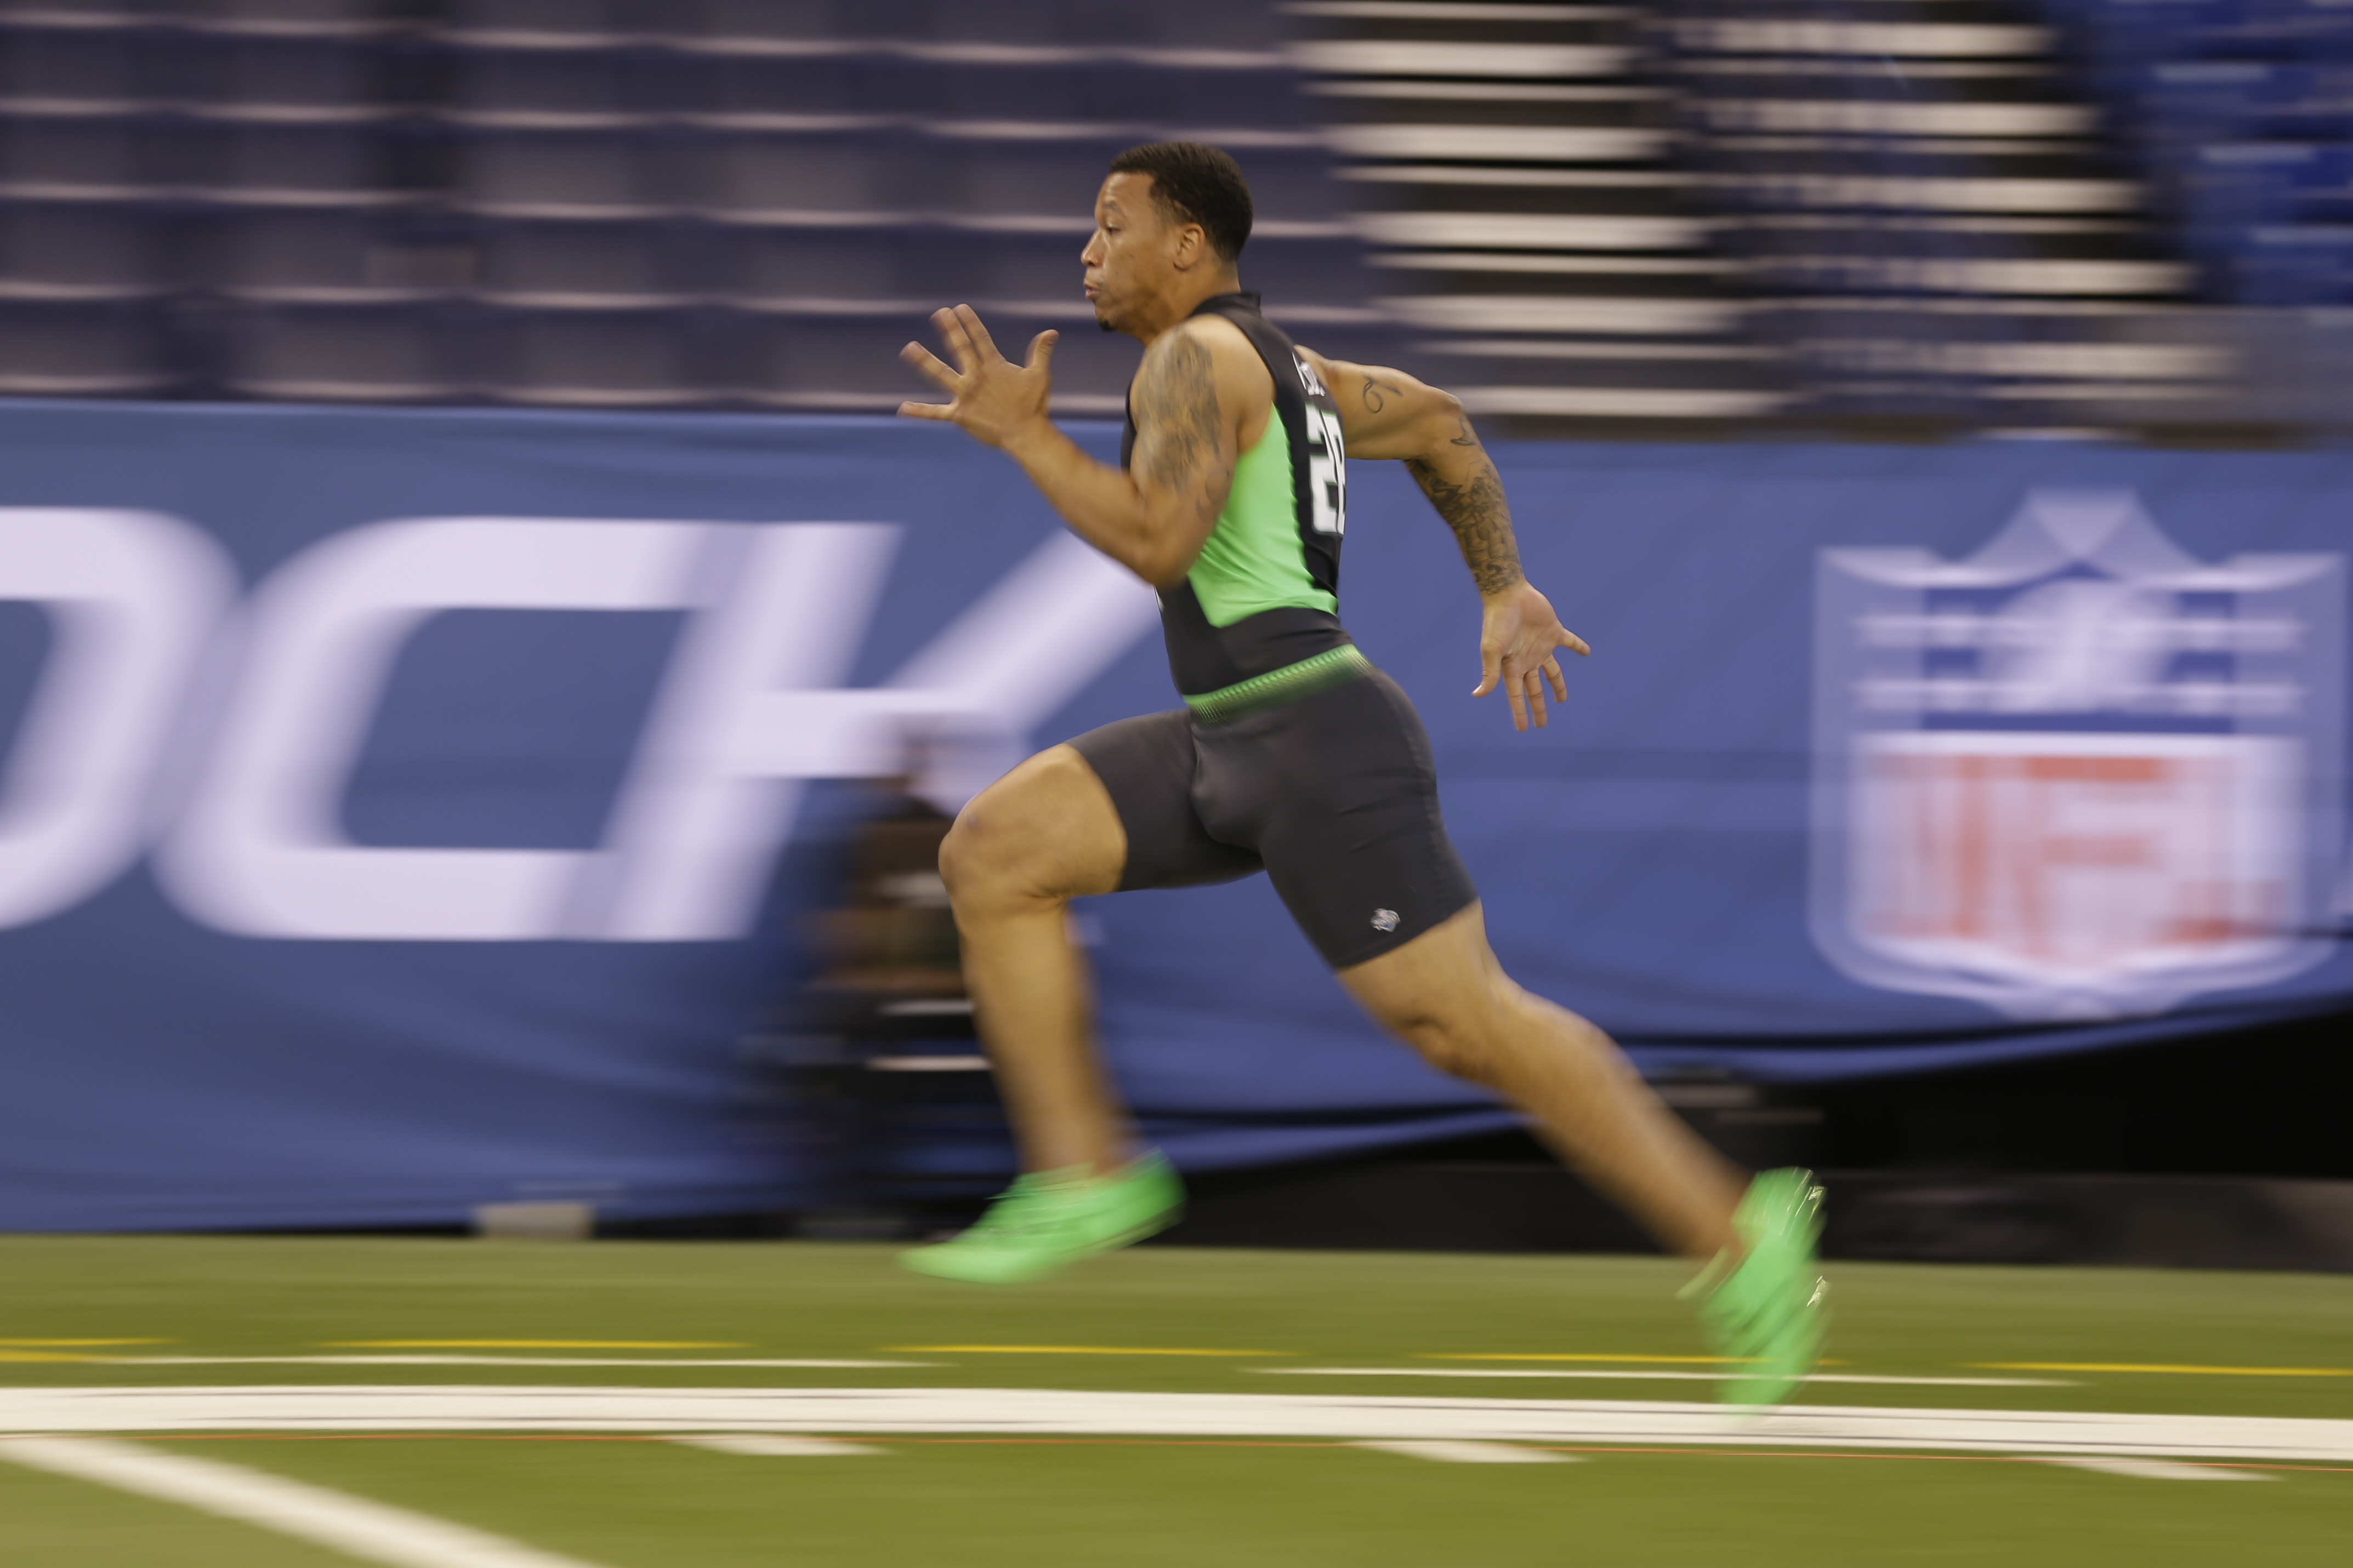 In this image taken with a slow shutter speed, South Carolina running back Brandon Wilds runs the 40-yard dash at the NFL football scouting combine in Indianapolis, Friday, Feb. 26, 2016. (AP Photo/Michael Conroy)